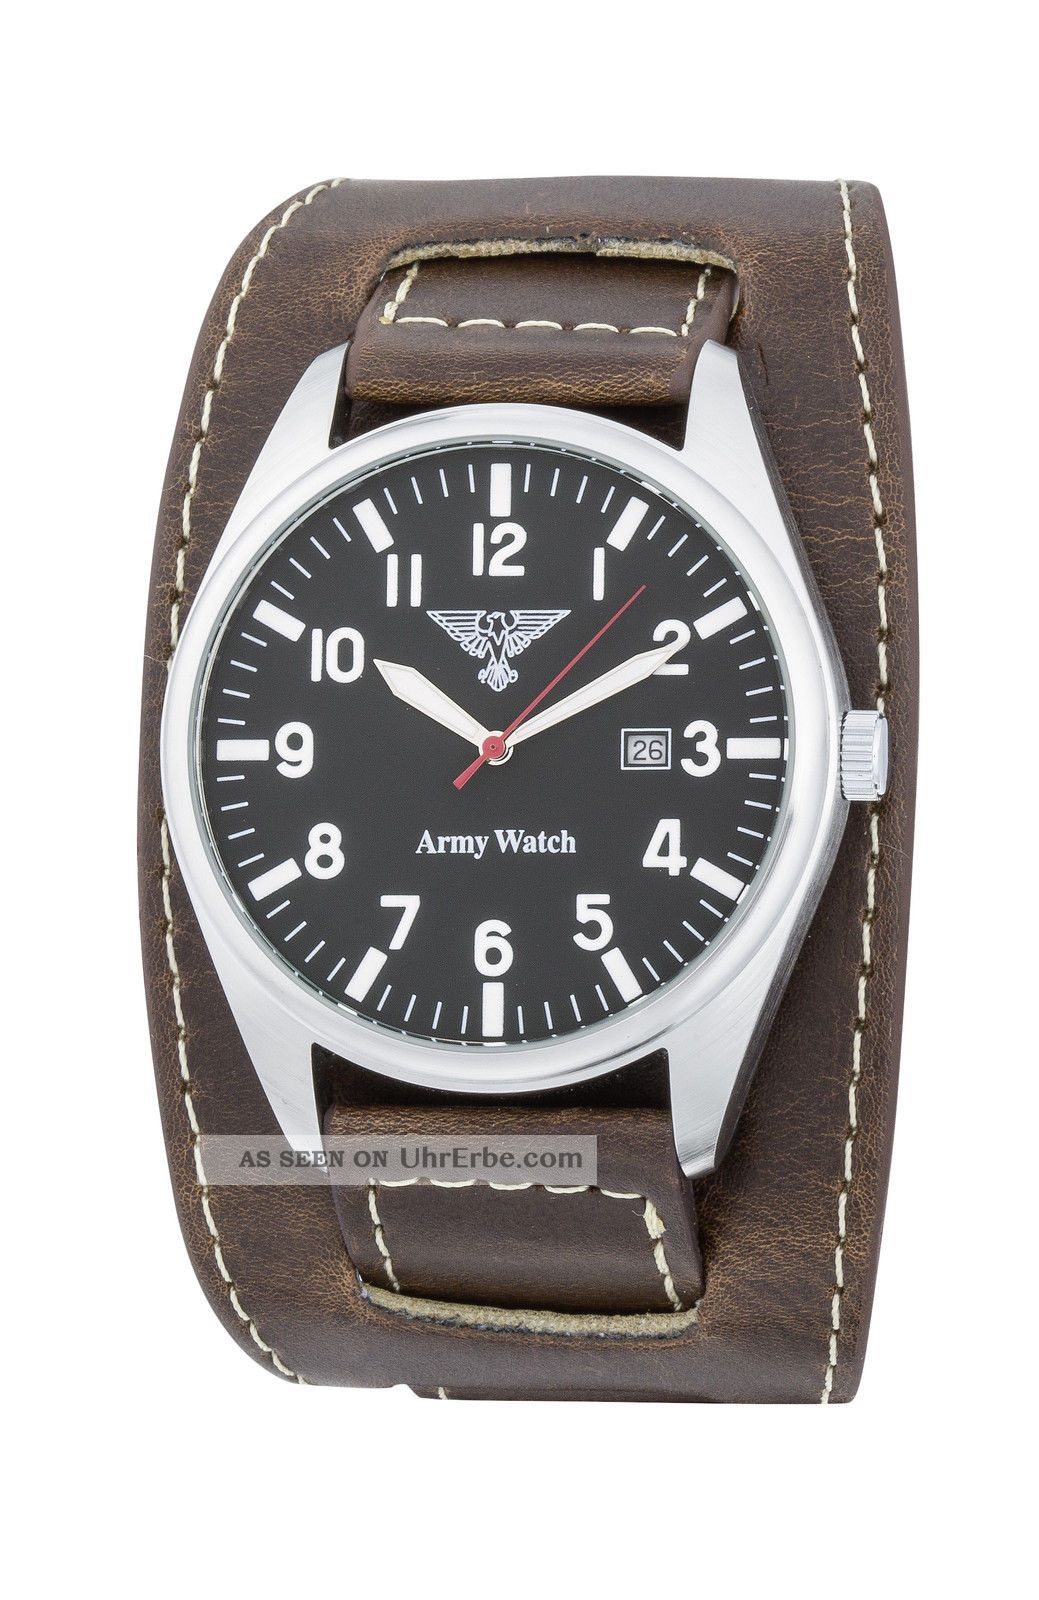 Schicke Eichmüller Army Watch German Air Force Xl 45mm Braunes Unterlegeband Armbanduhren Bild